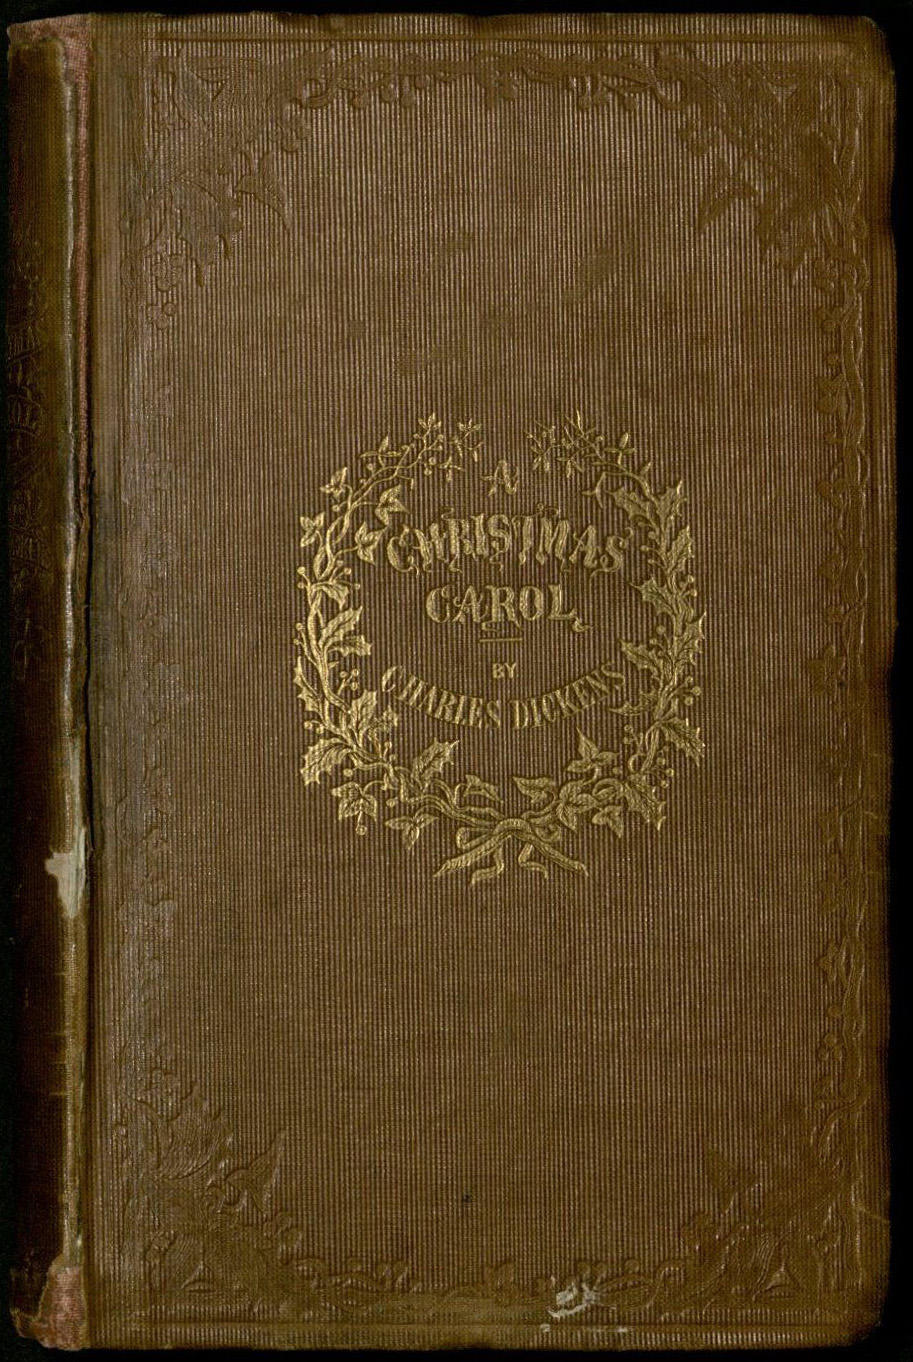 the cover of dickenss a christmas carol